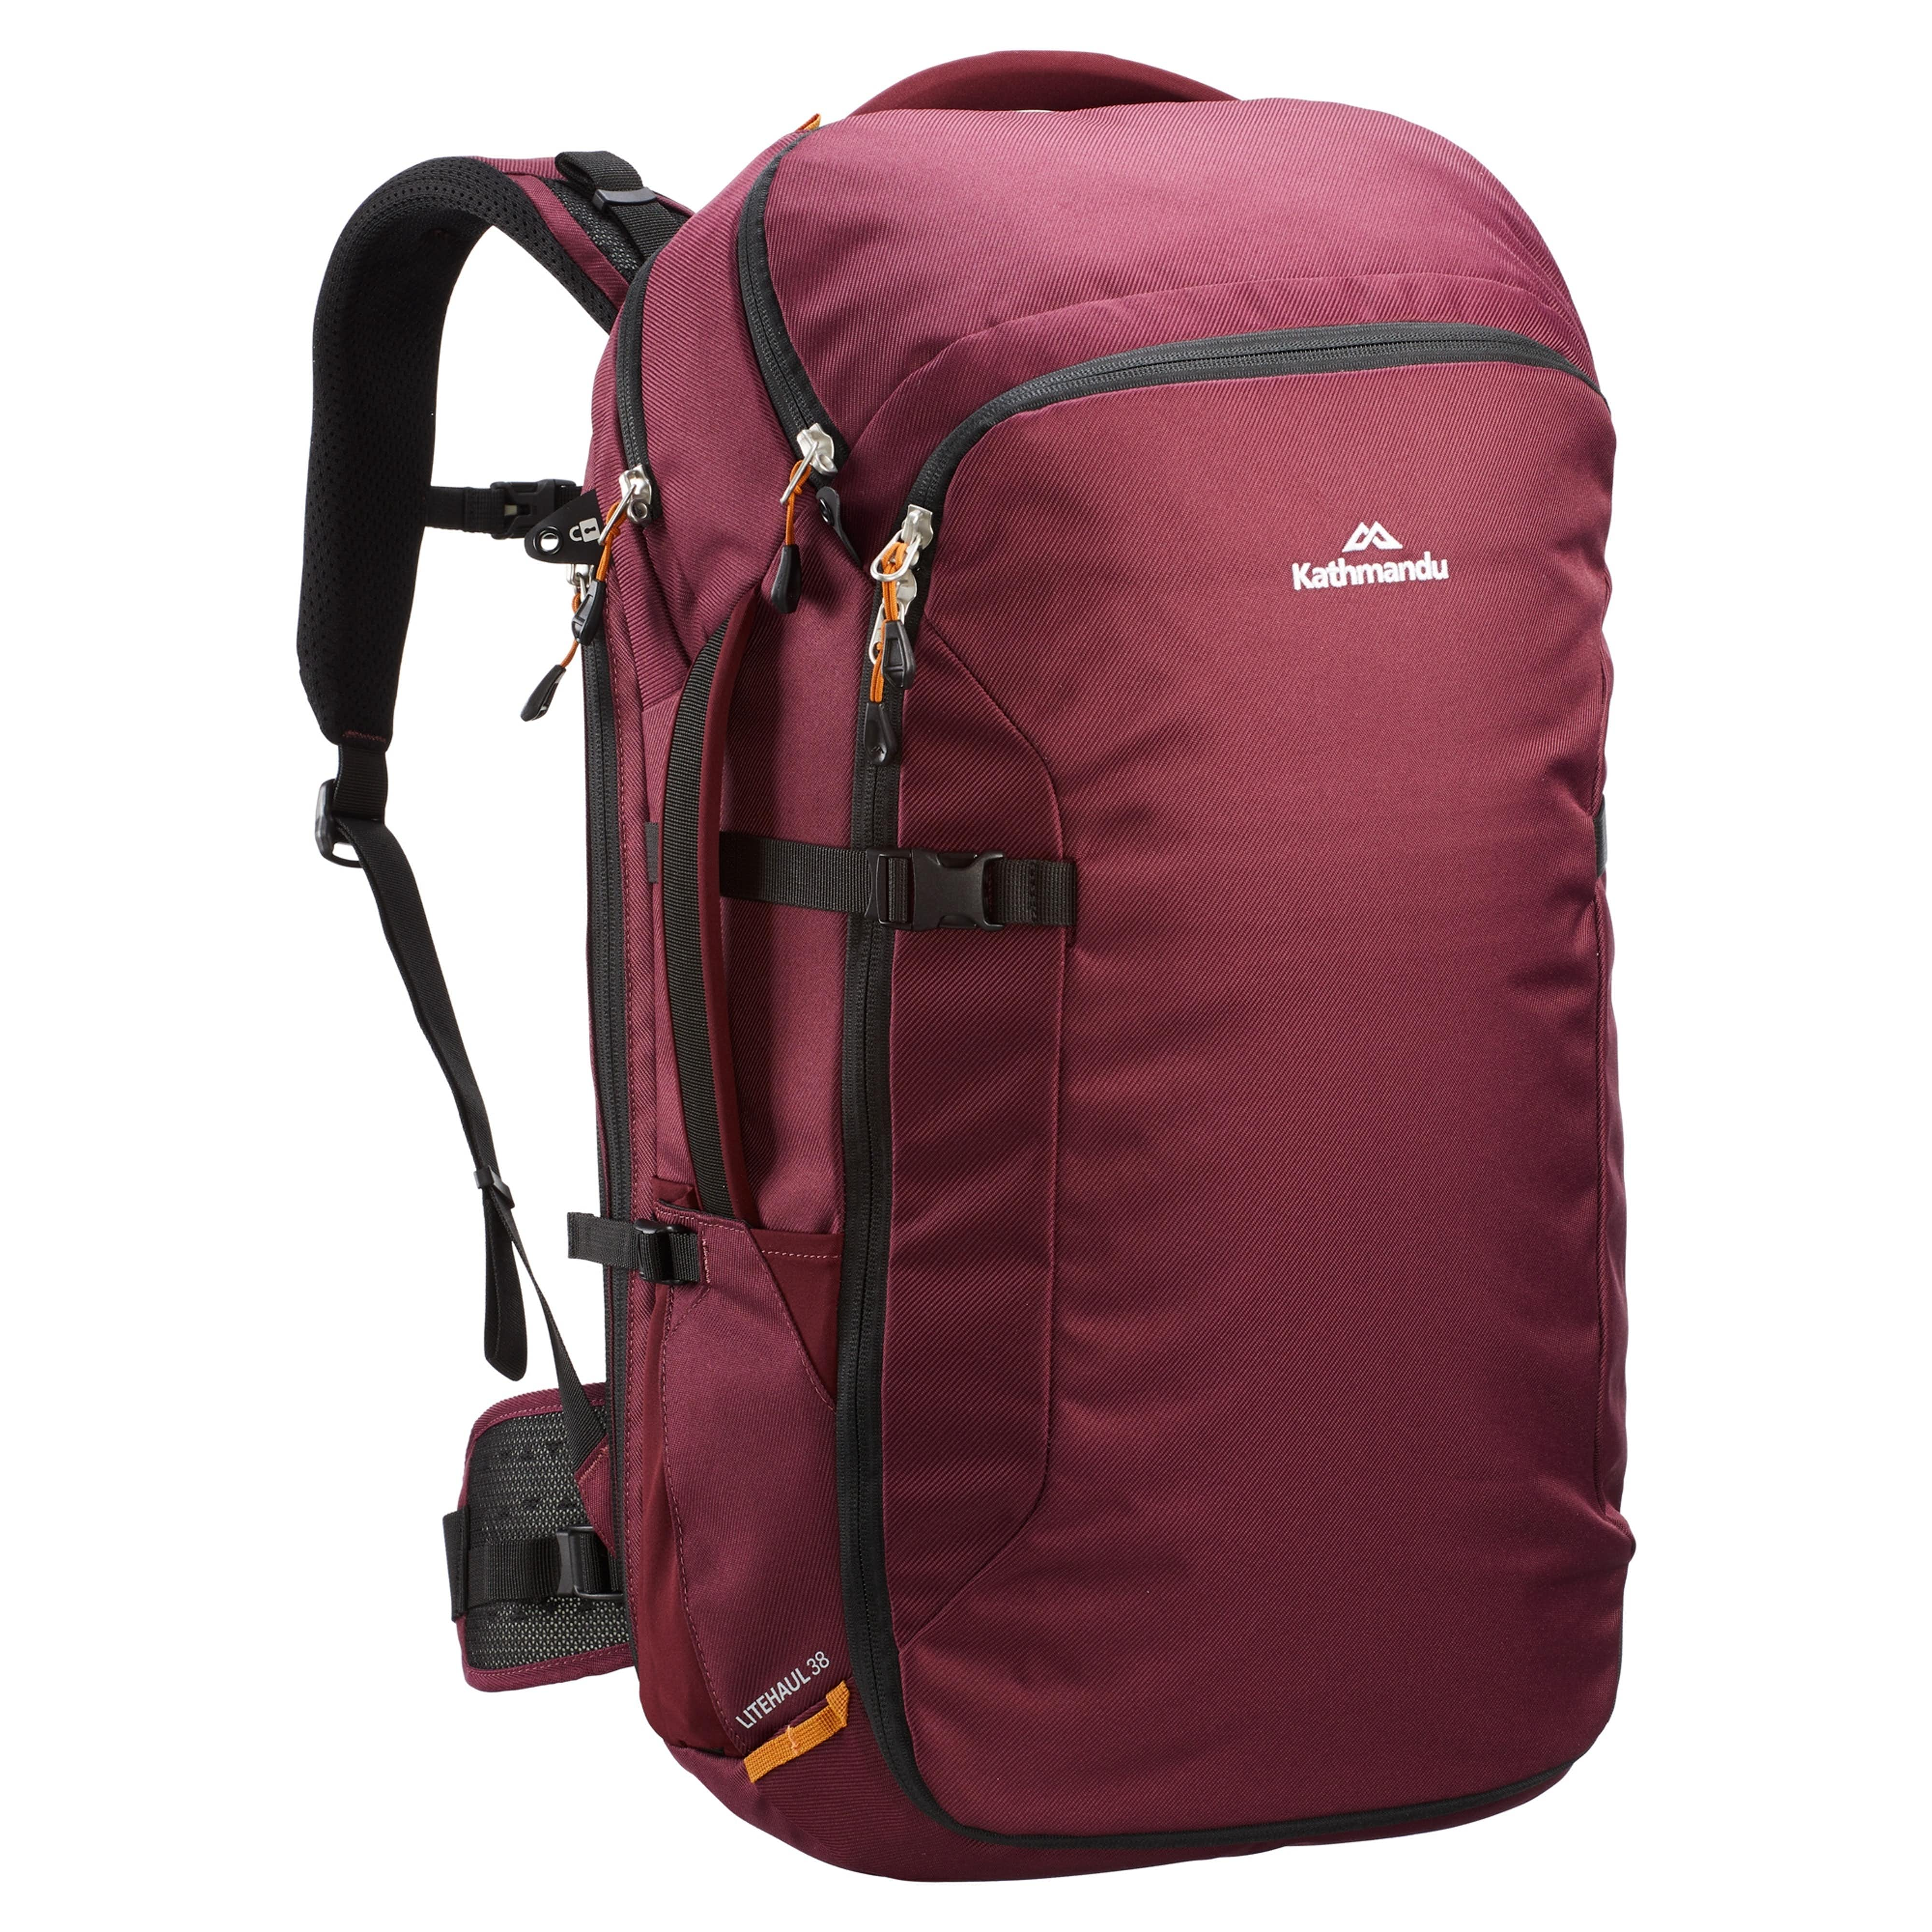 Carry On Luggage Bag   Backpack with Wheels for Sale Online   AU dd7092fa33